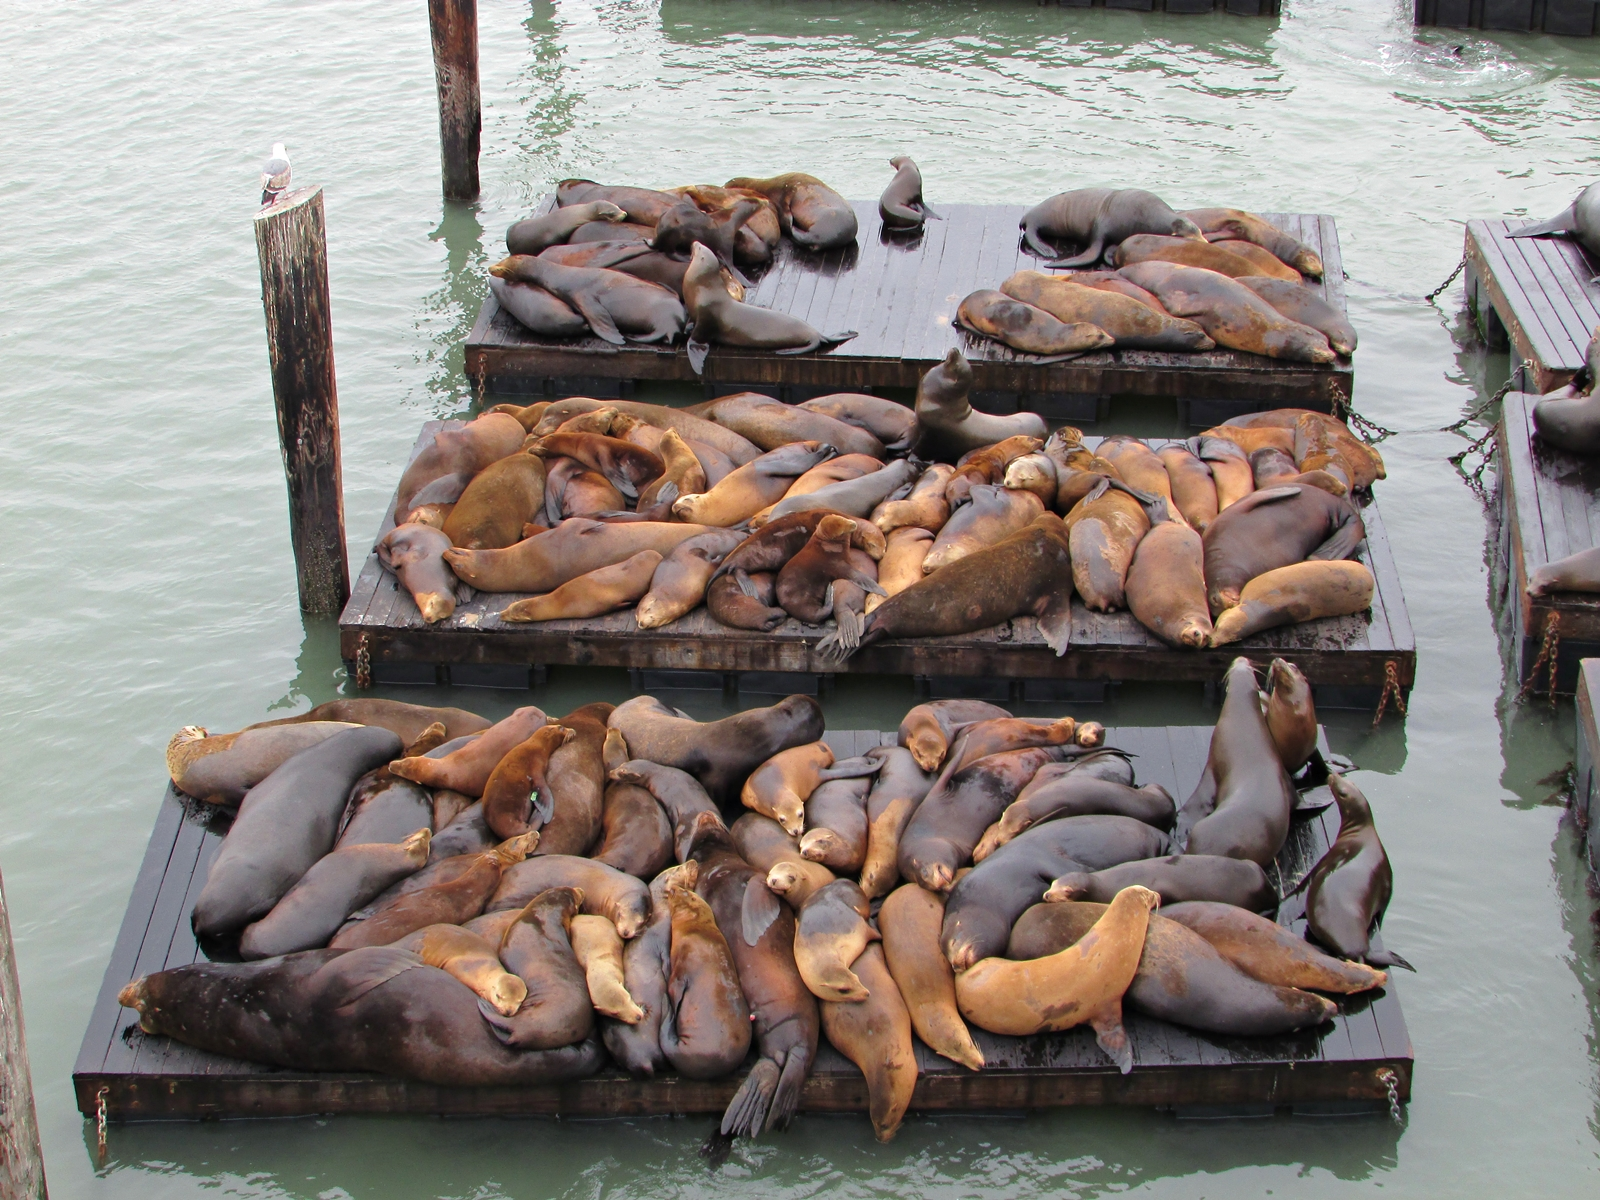 San Francisco - Seelöwen - Sea Lions - USA Rundreise - Roadtrip - Reisebericht - Travel Diary - Fashionladyloves